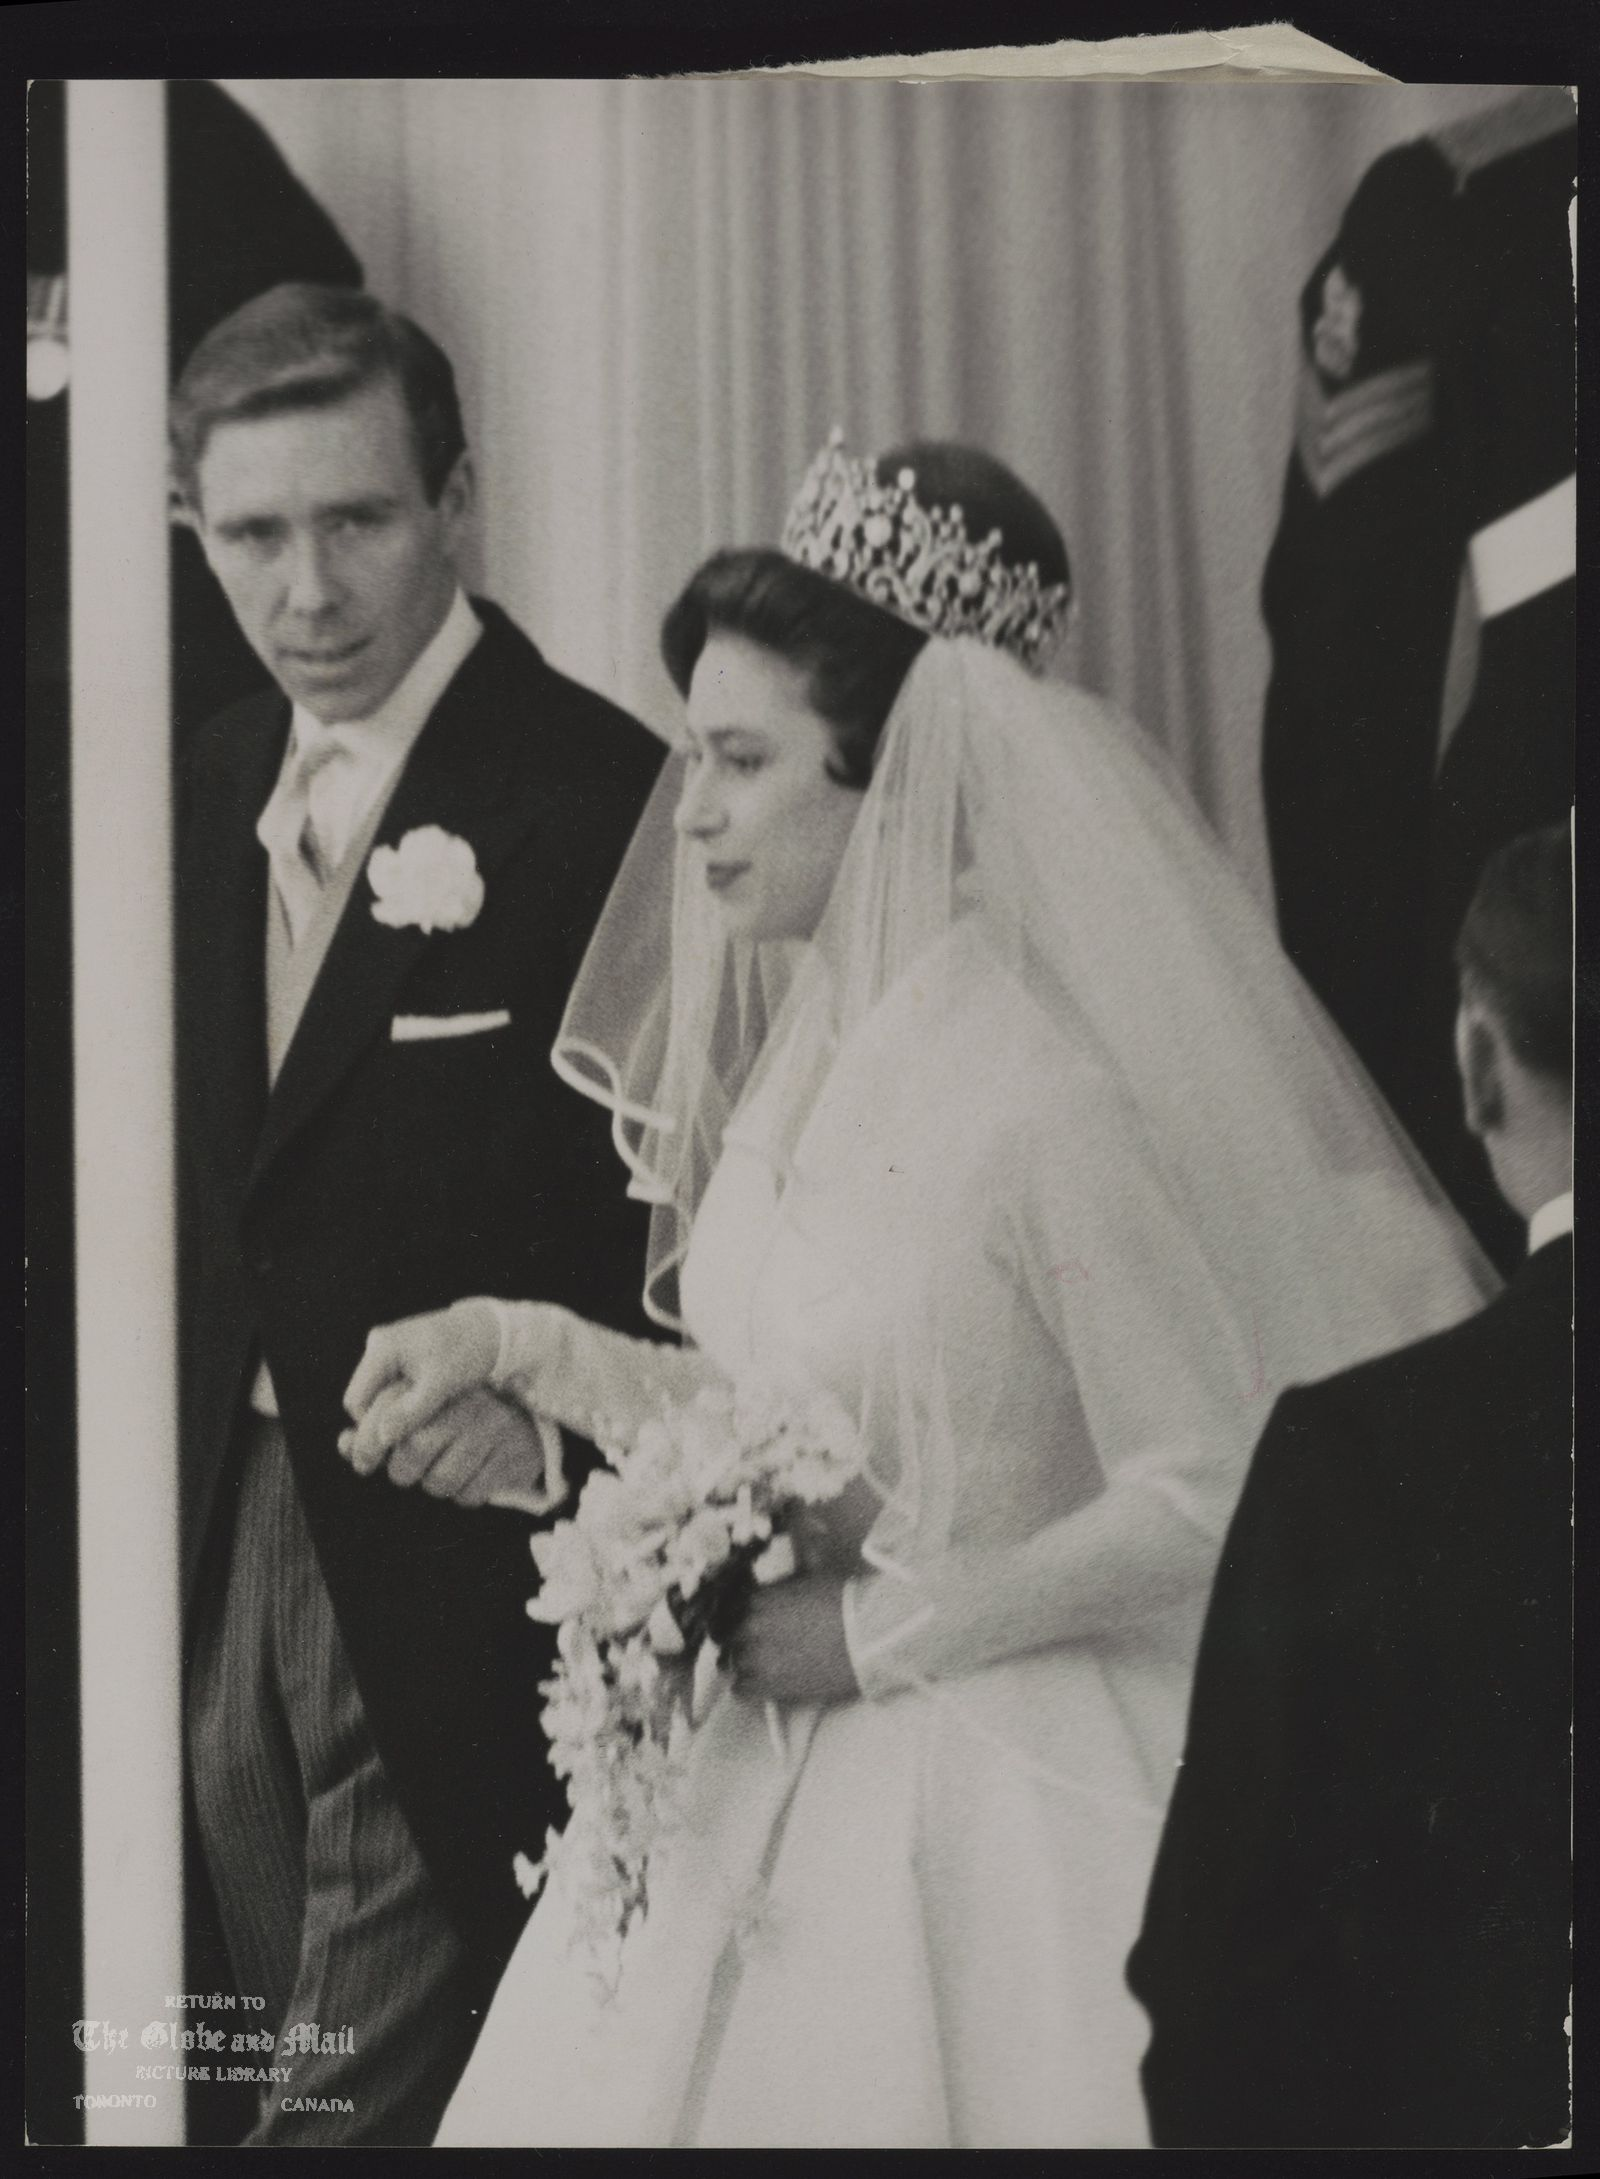 ROYAL FAMILY Gt. Britain Princess Margaret (Wedding) PRINCESS AND BRIDGEROOM LEAVE THE ABBEY HAND IN HAND -- PRINCESS MARGARET AND HER BRIDEGROOM, MR. ANTONY ARMSTRONG-JONES, LEAVE WESTMINSTER ABBEY, LONDON, TODAY MAY 6, 1960 AFTER THEIR WEDDING.